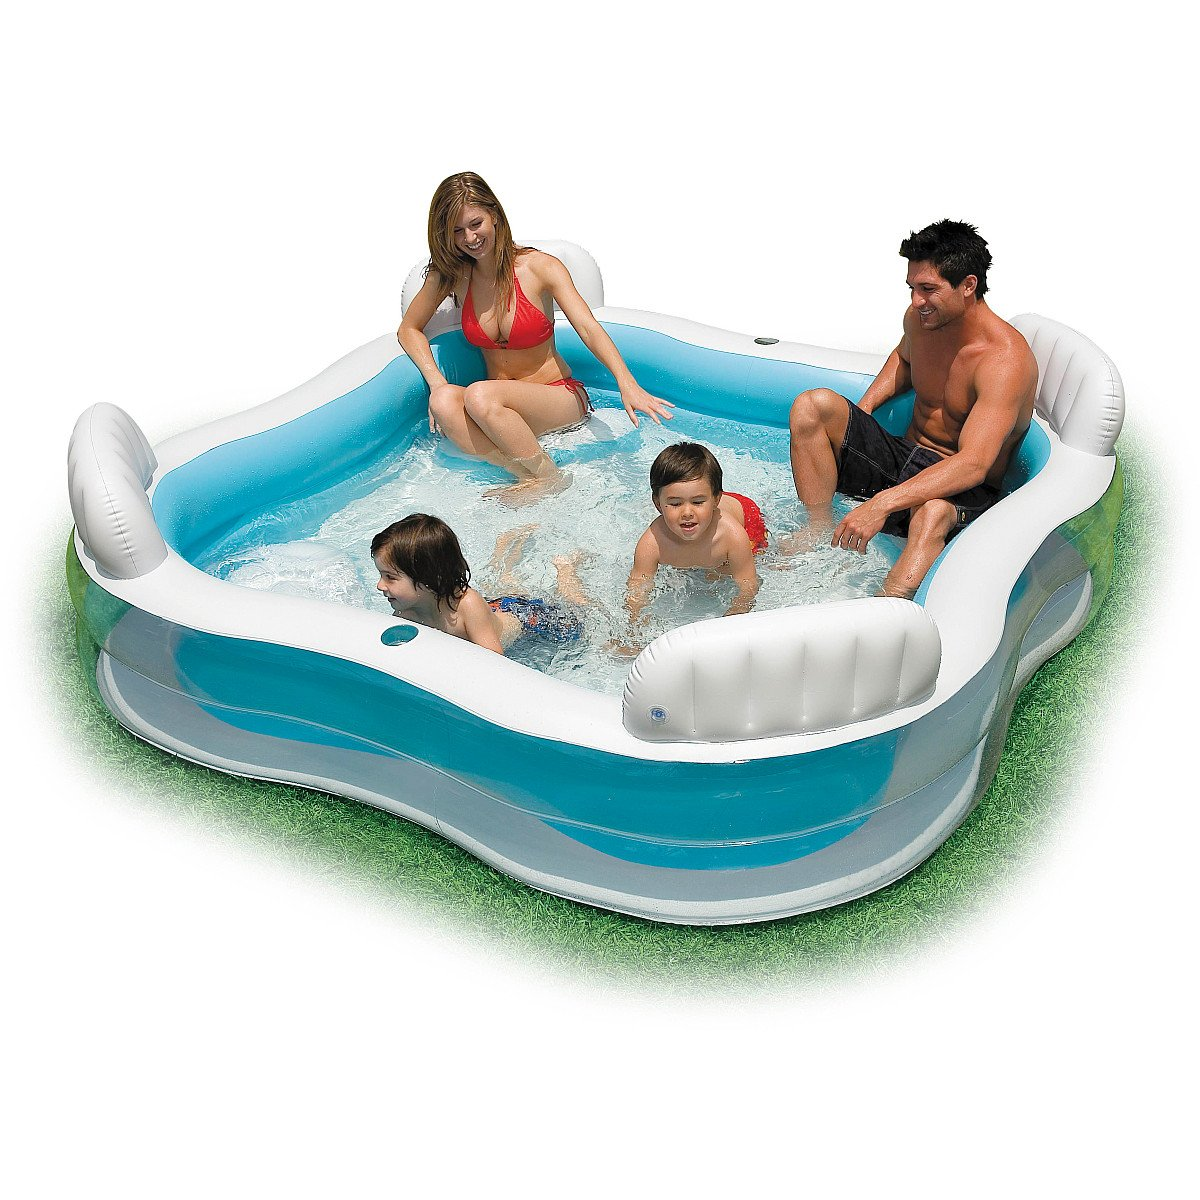 Pool Filterpumpe Funktion Intex Quick Up Pool 28146 Set 7in1 Ø 366 X 91 Cm